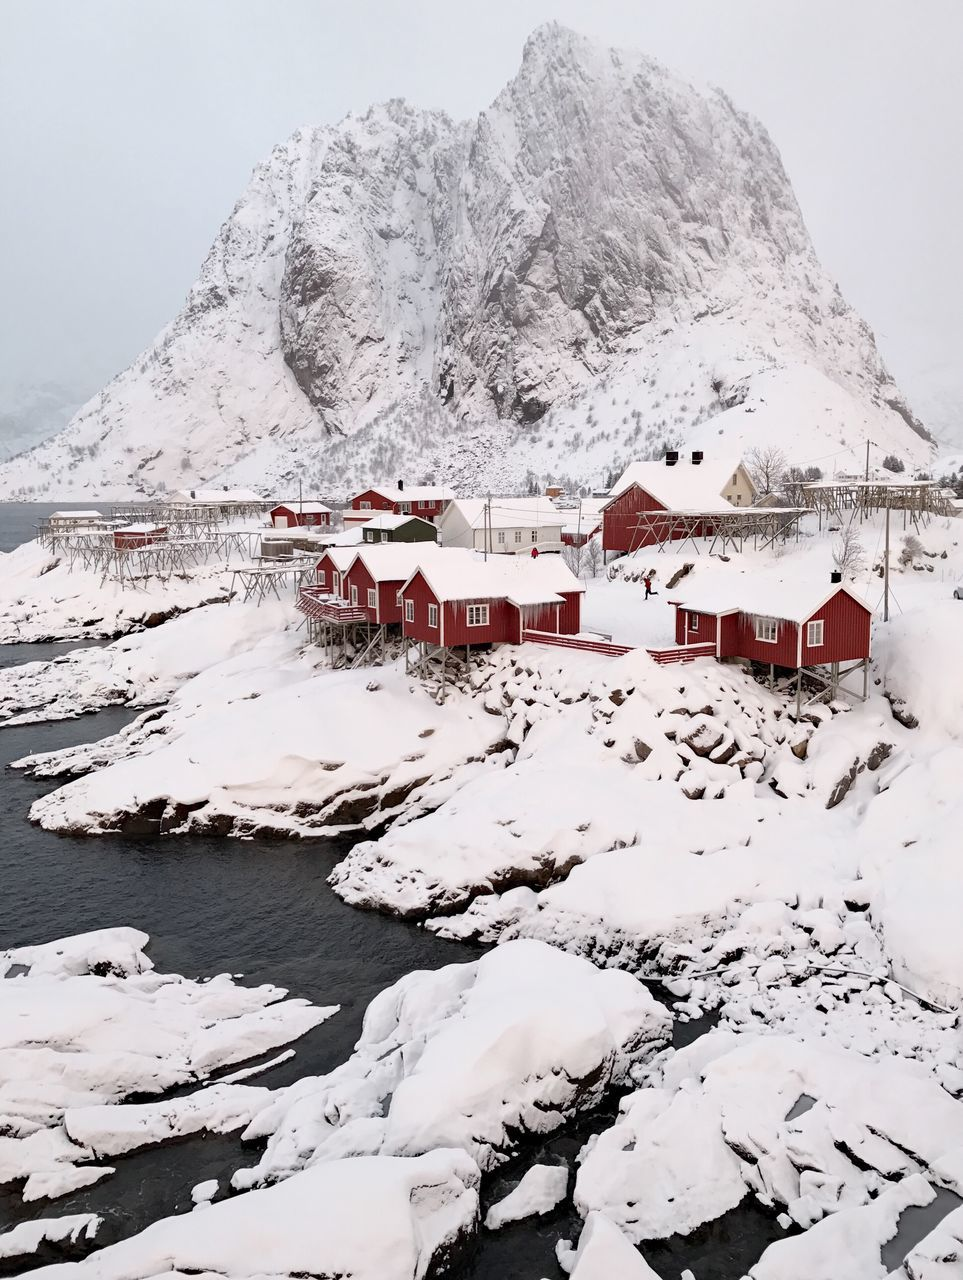 snow, winter, cold temperature, mountain, weather, nature, scenics, snowcapped mountain, outdoors, mountain range, white color, tranquil scene, frozen, day, beauty in nature, tranquility, no people, physical geography, landscape, sky, iceberg